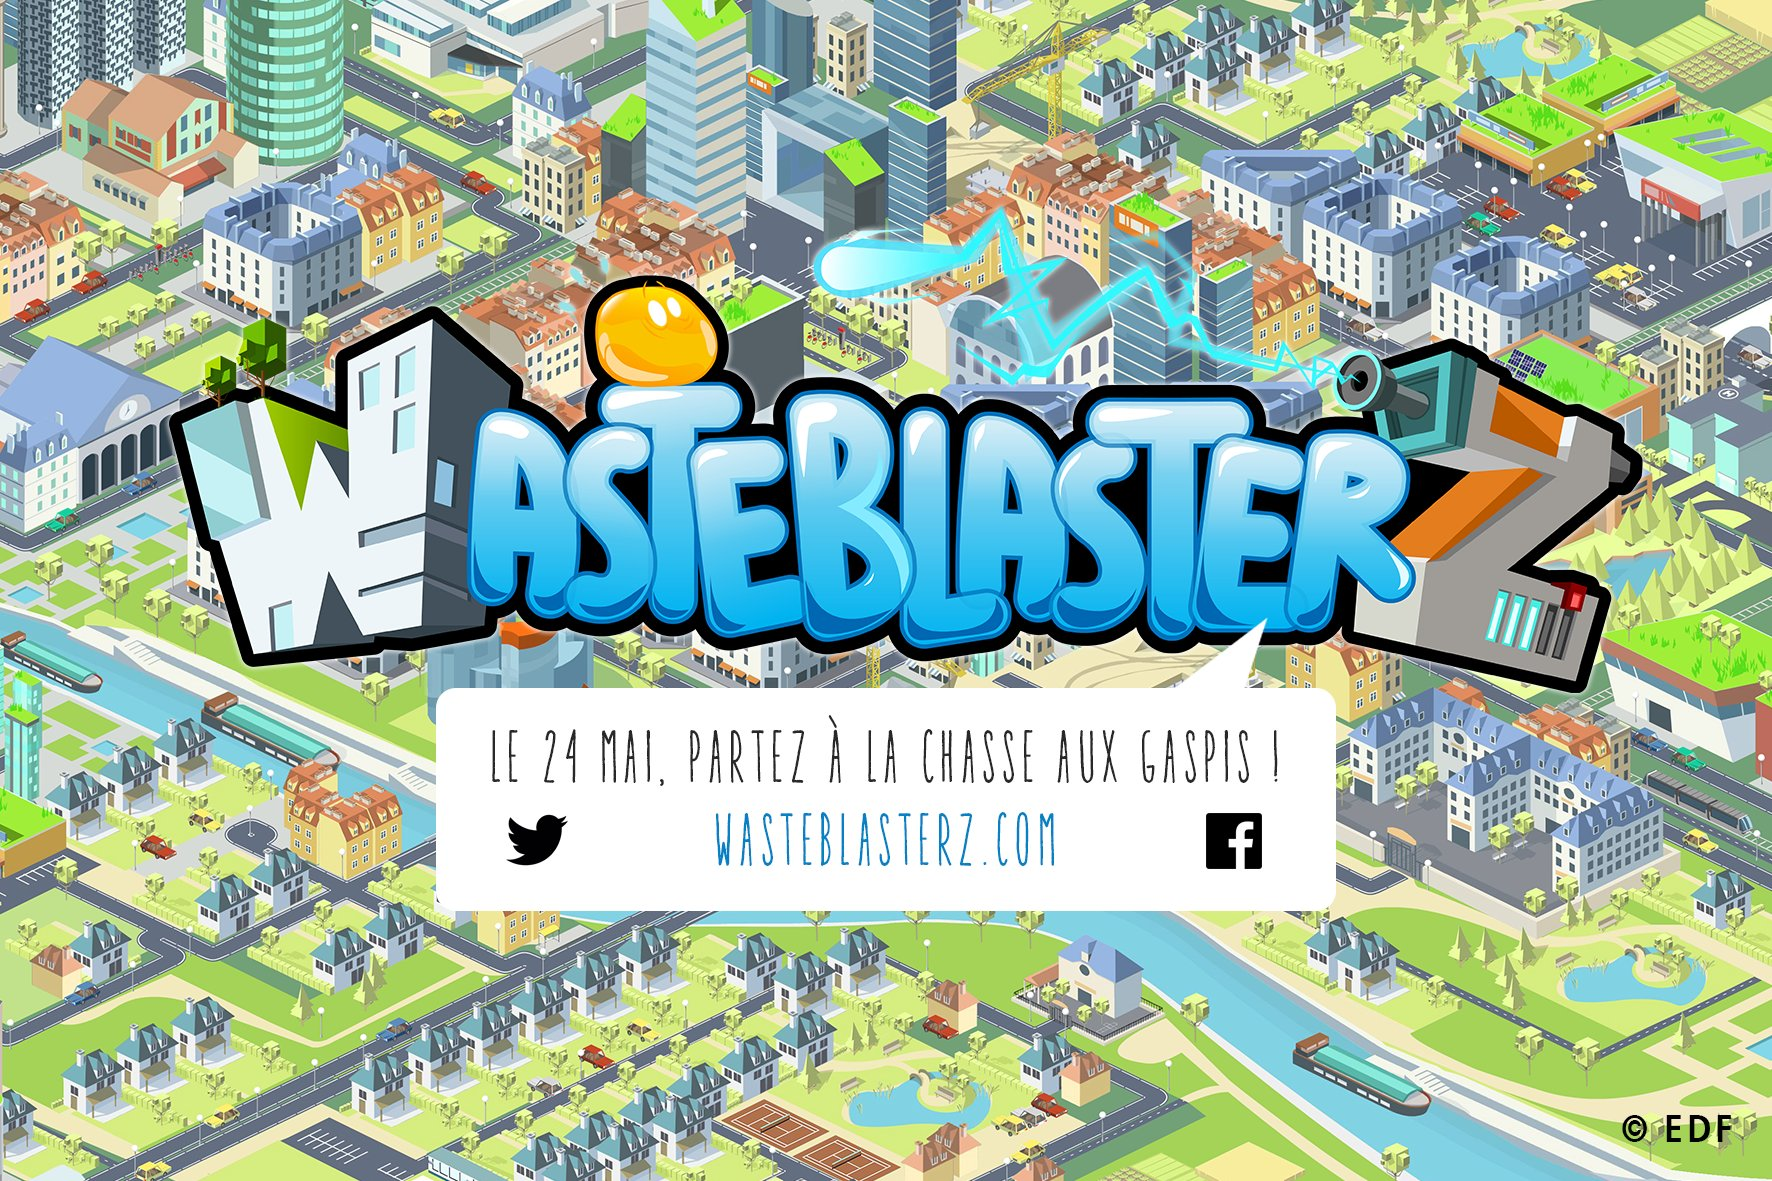 Prenez votre LazeroWatt et chassez les #gaspillages en téléchargeant @Wasteblasterz sur @AppStore https://t.co/7mYRFdpNiZ #seriousgame https://t.co/SqXQiGzKlH